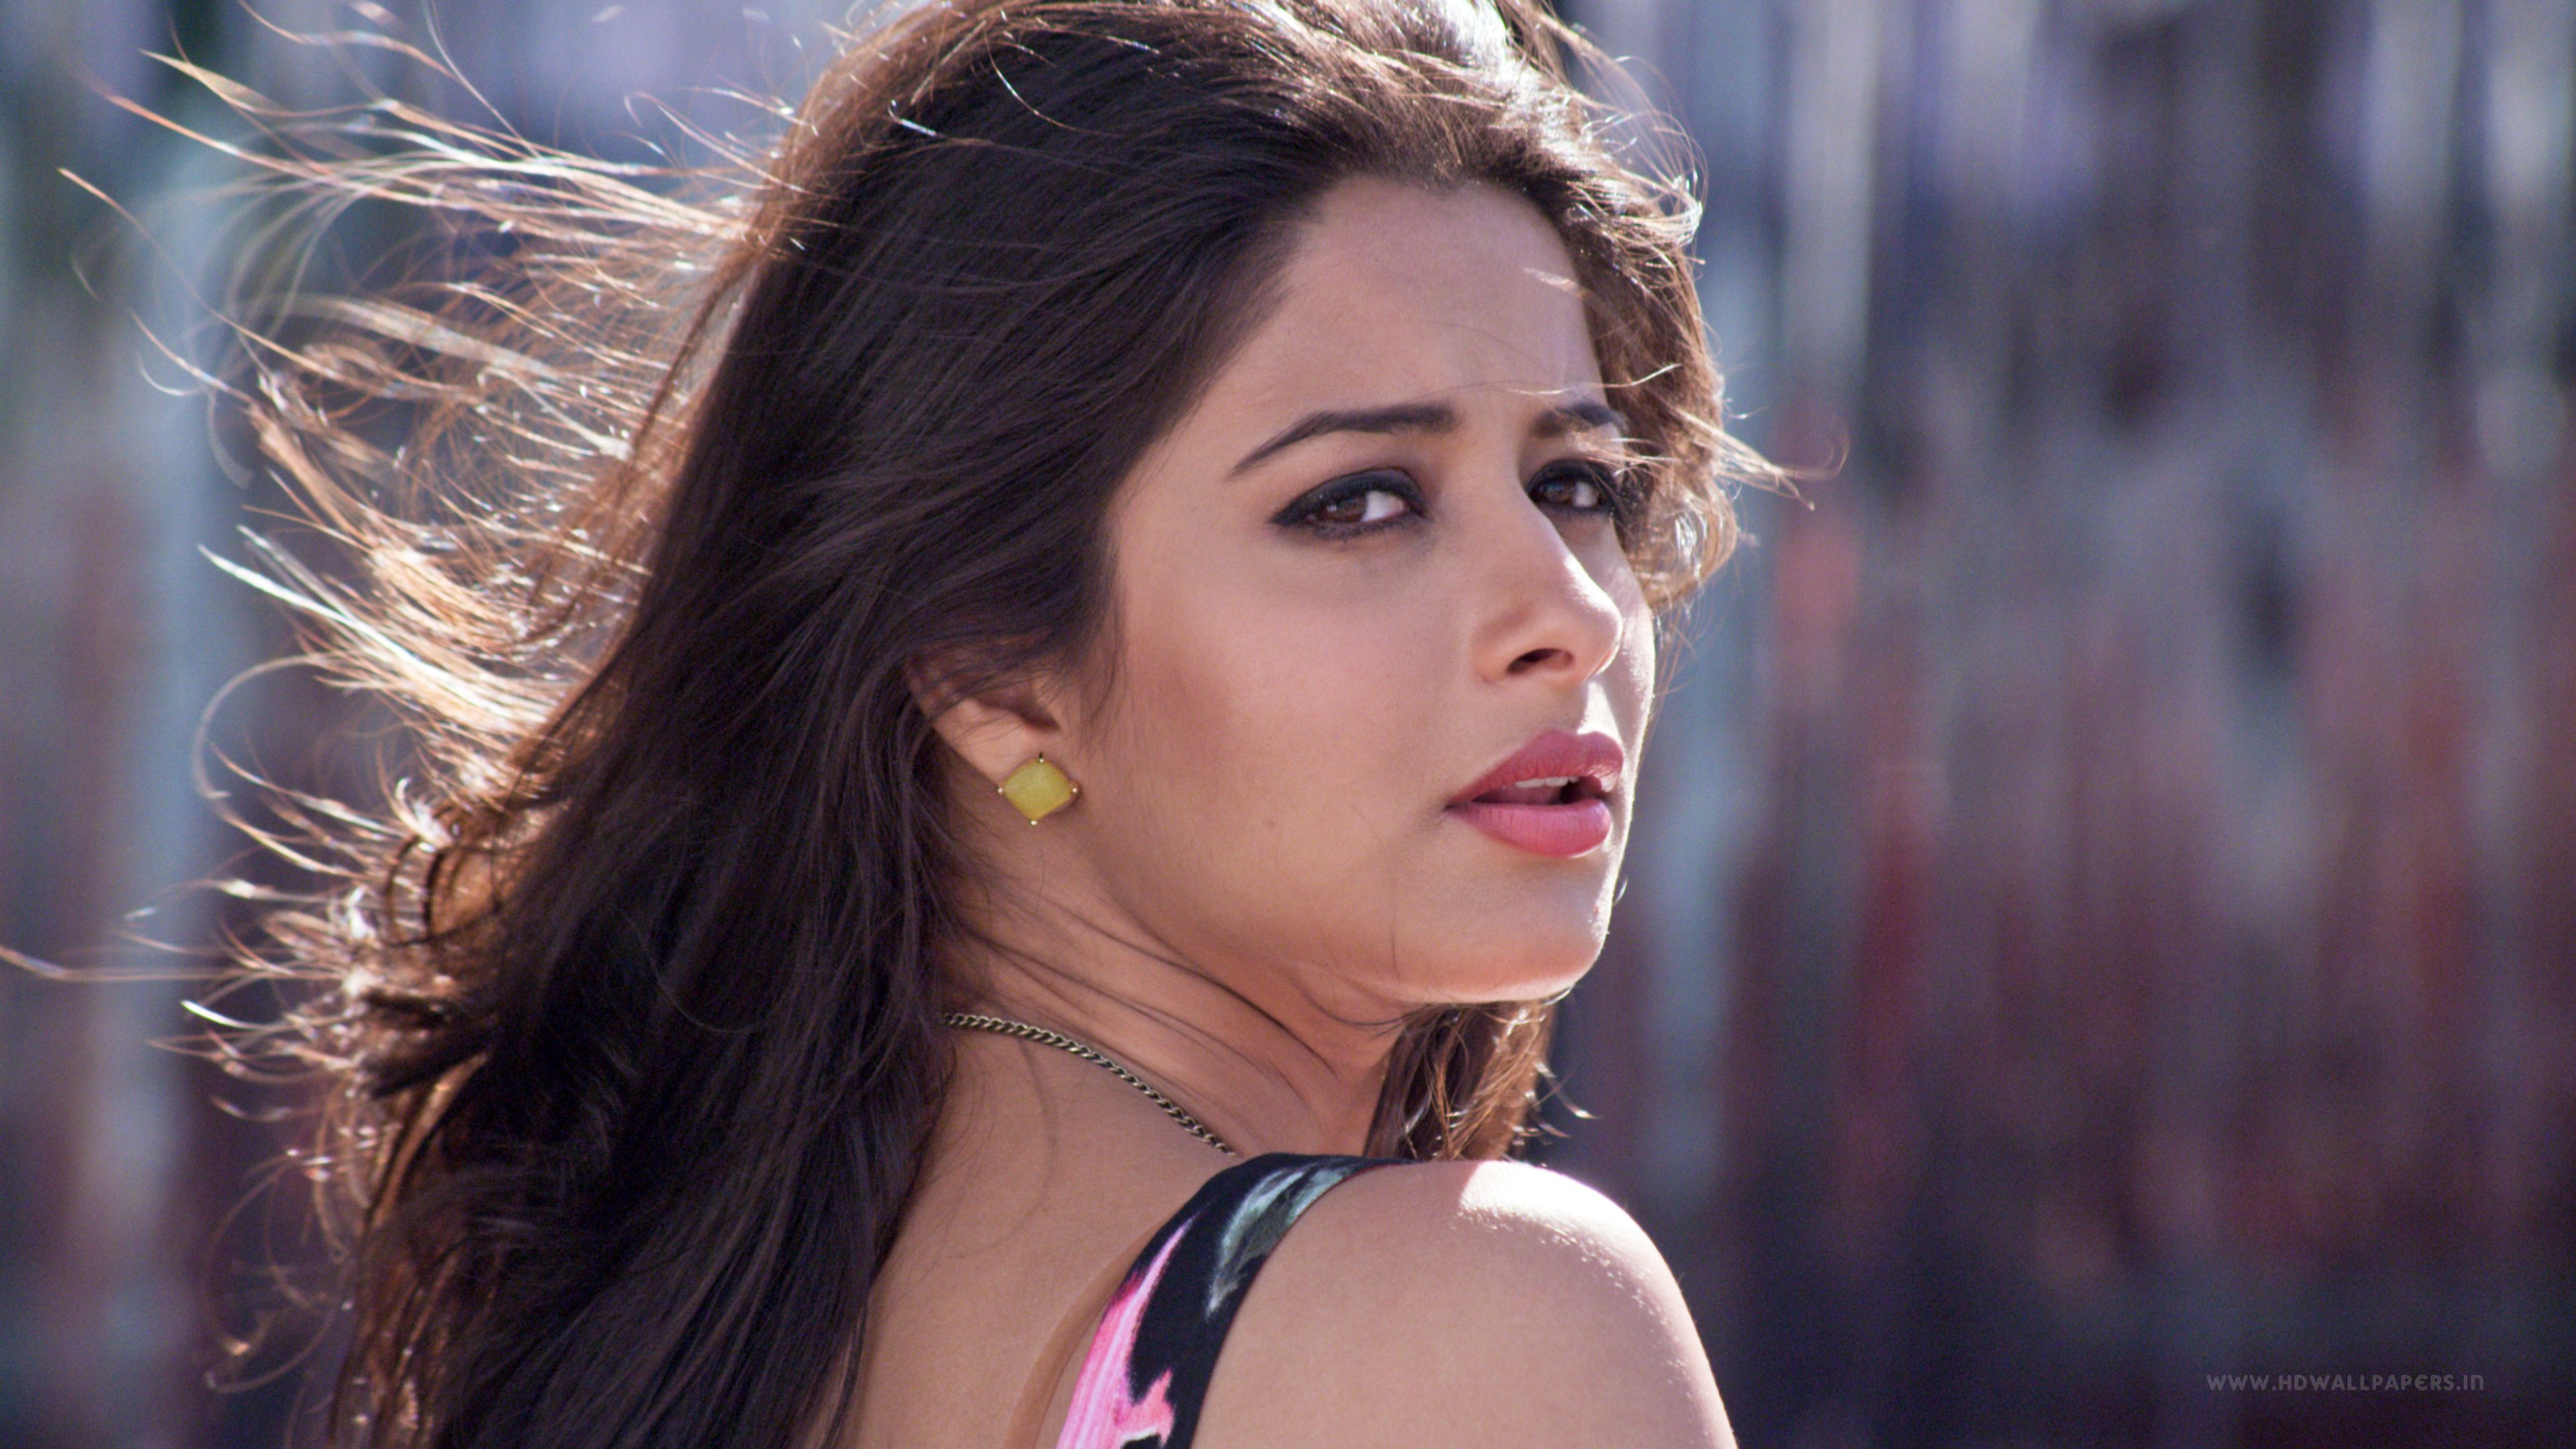 Sauth actresses ful hd wallpapers